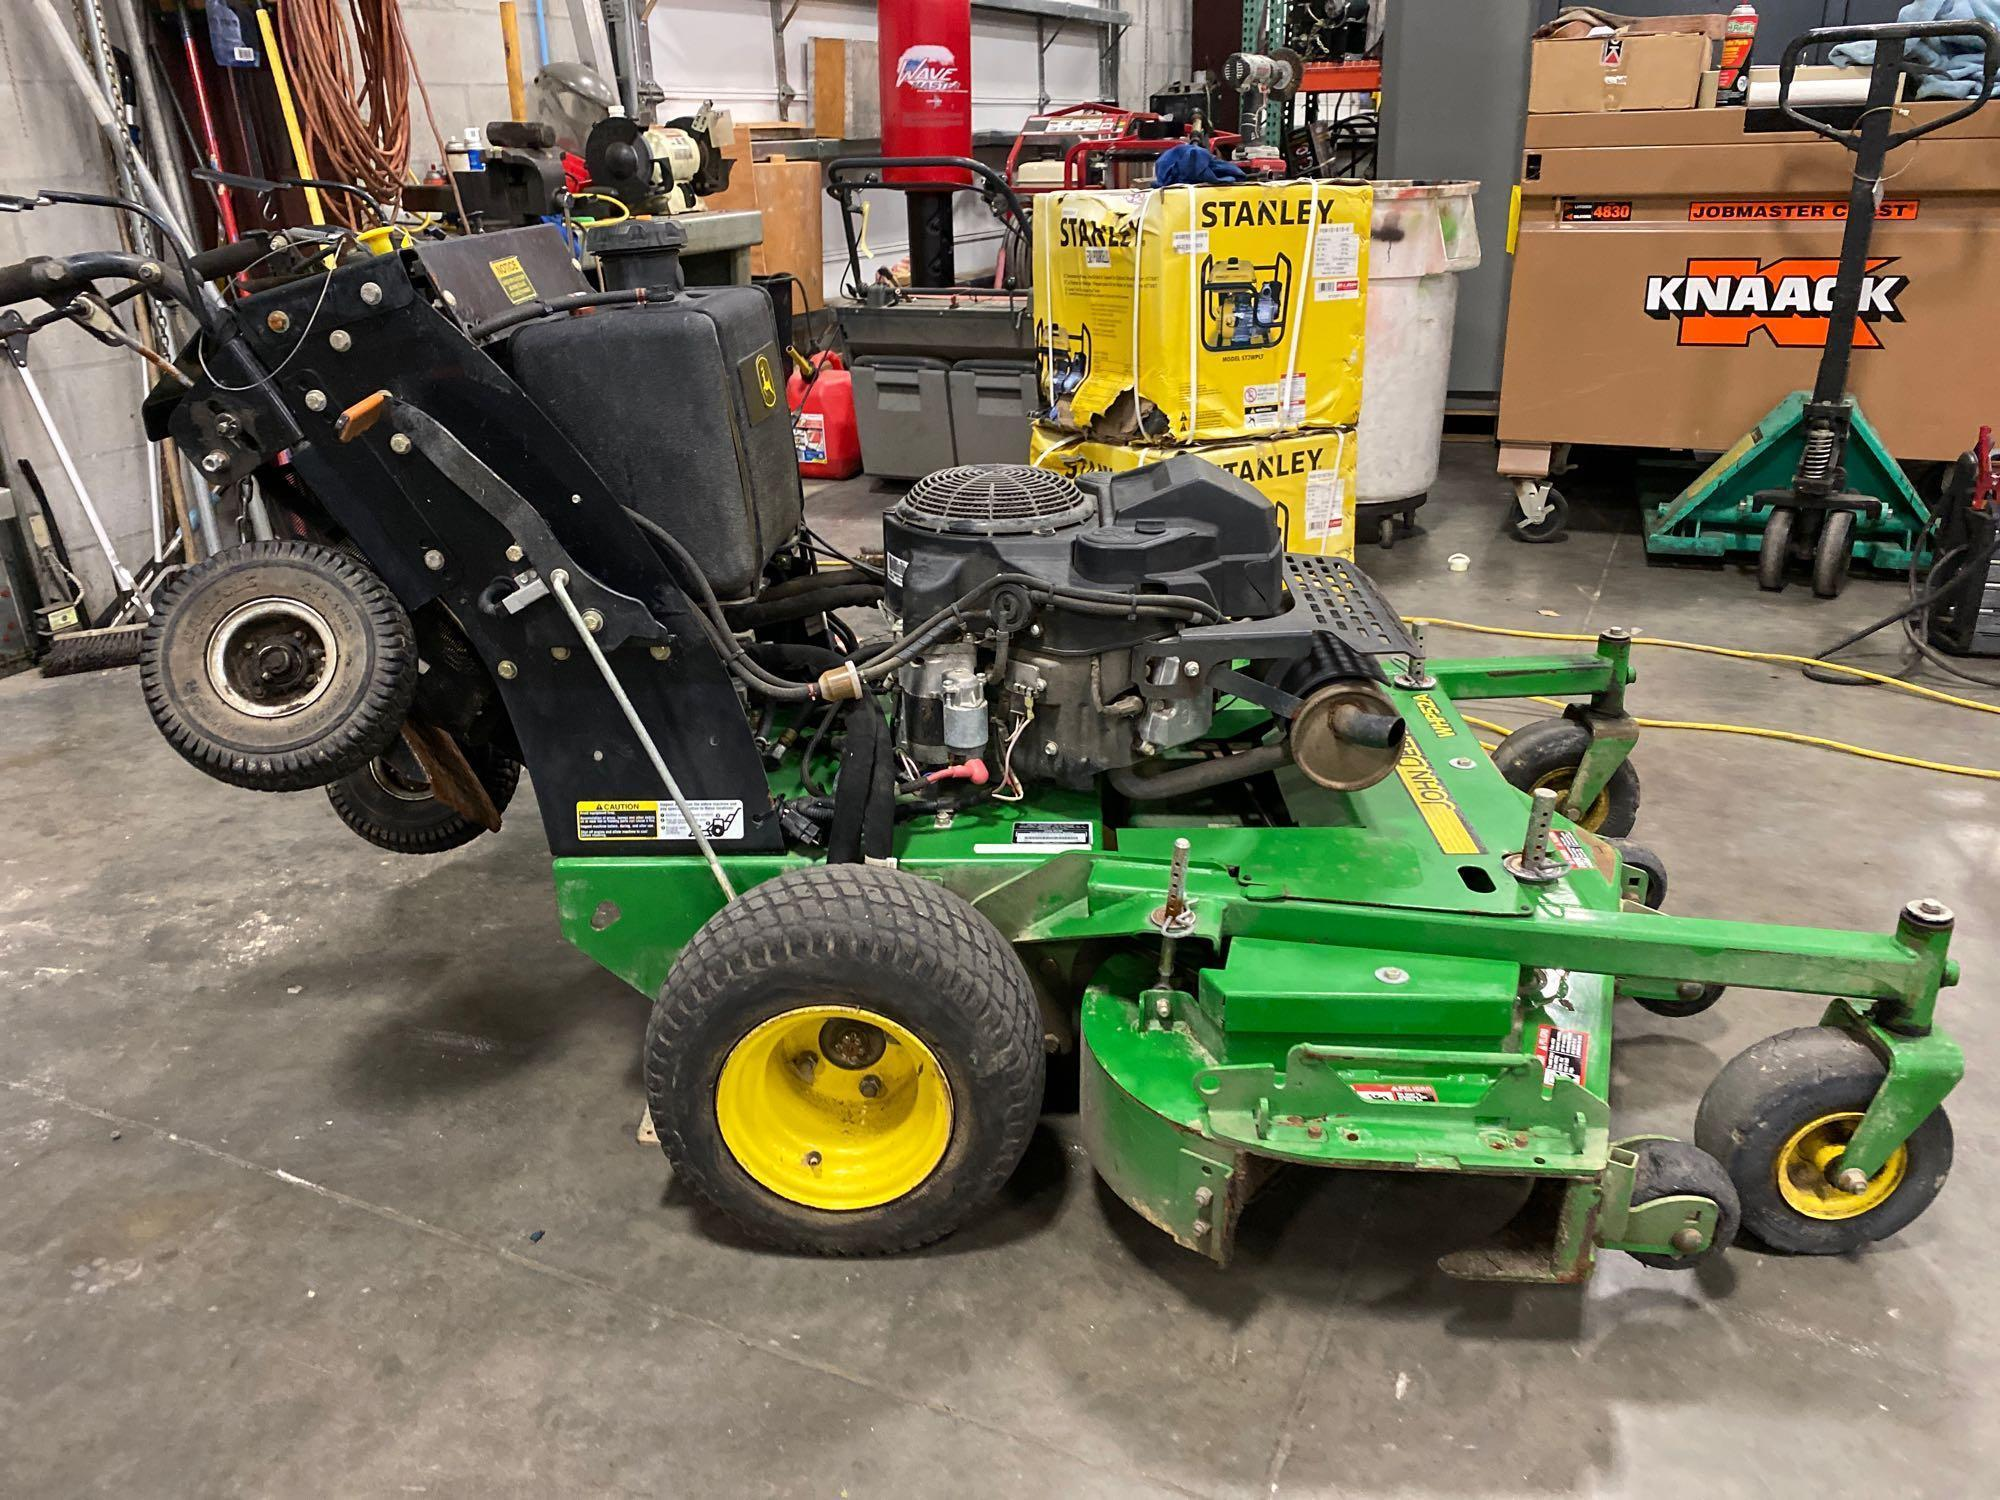 "JOHN DEERE MOWER JOHN DEERE WHP52A MOWER, 52"" DECK, RUNS AND OPERATES - Image 6 of 7"